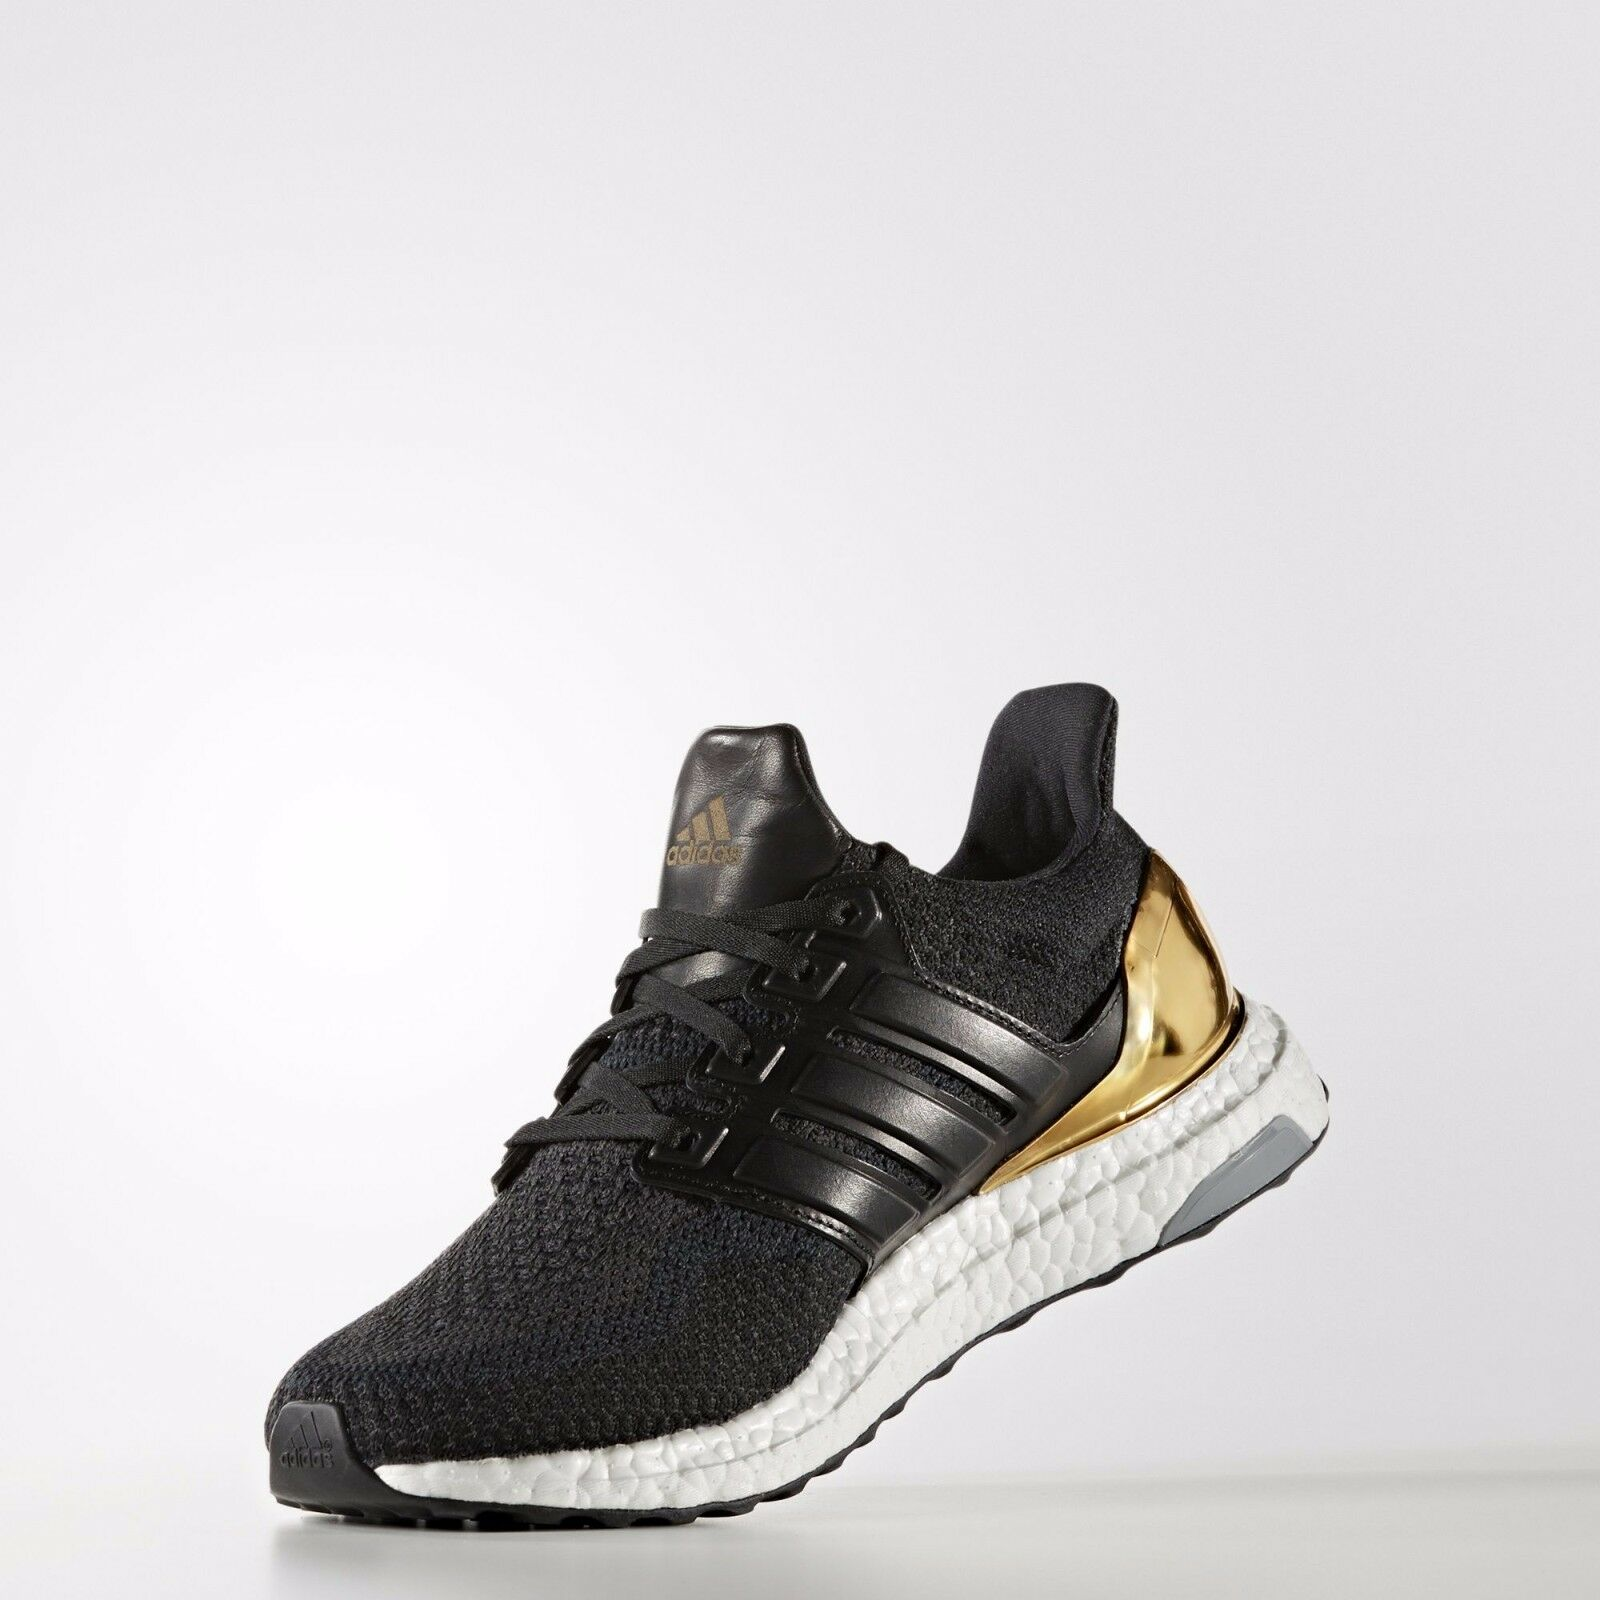 Adidas Medal Ultra Boost LTD Shoes BB3929 Olympic Gold Medal Adidas RARE Limited Edition 030165